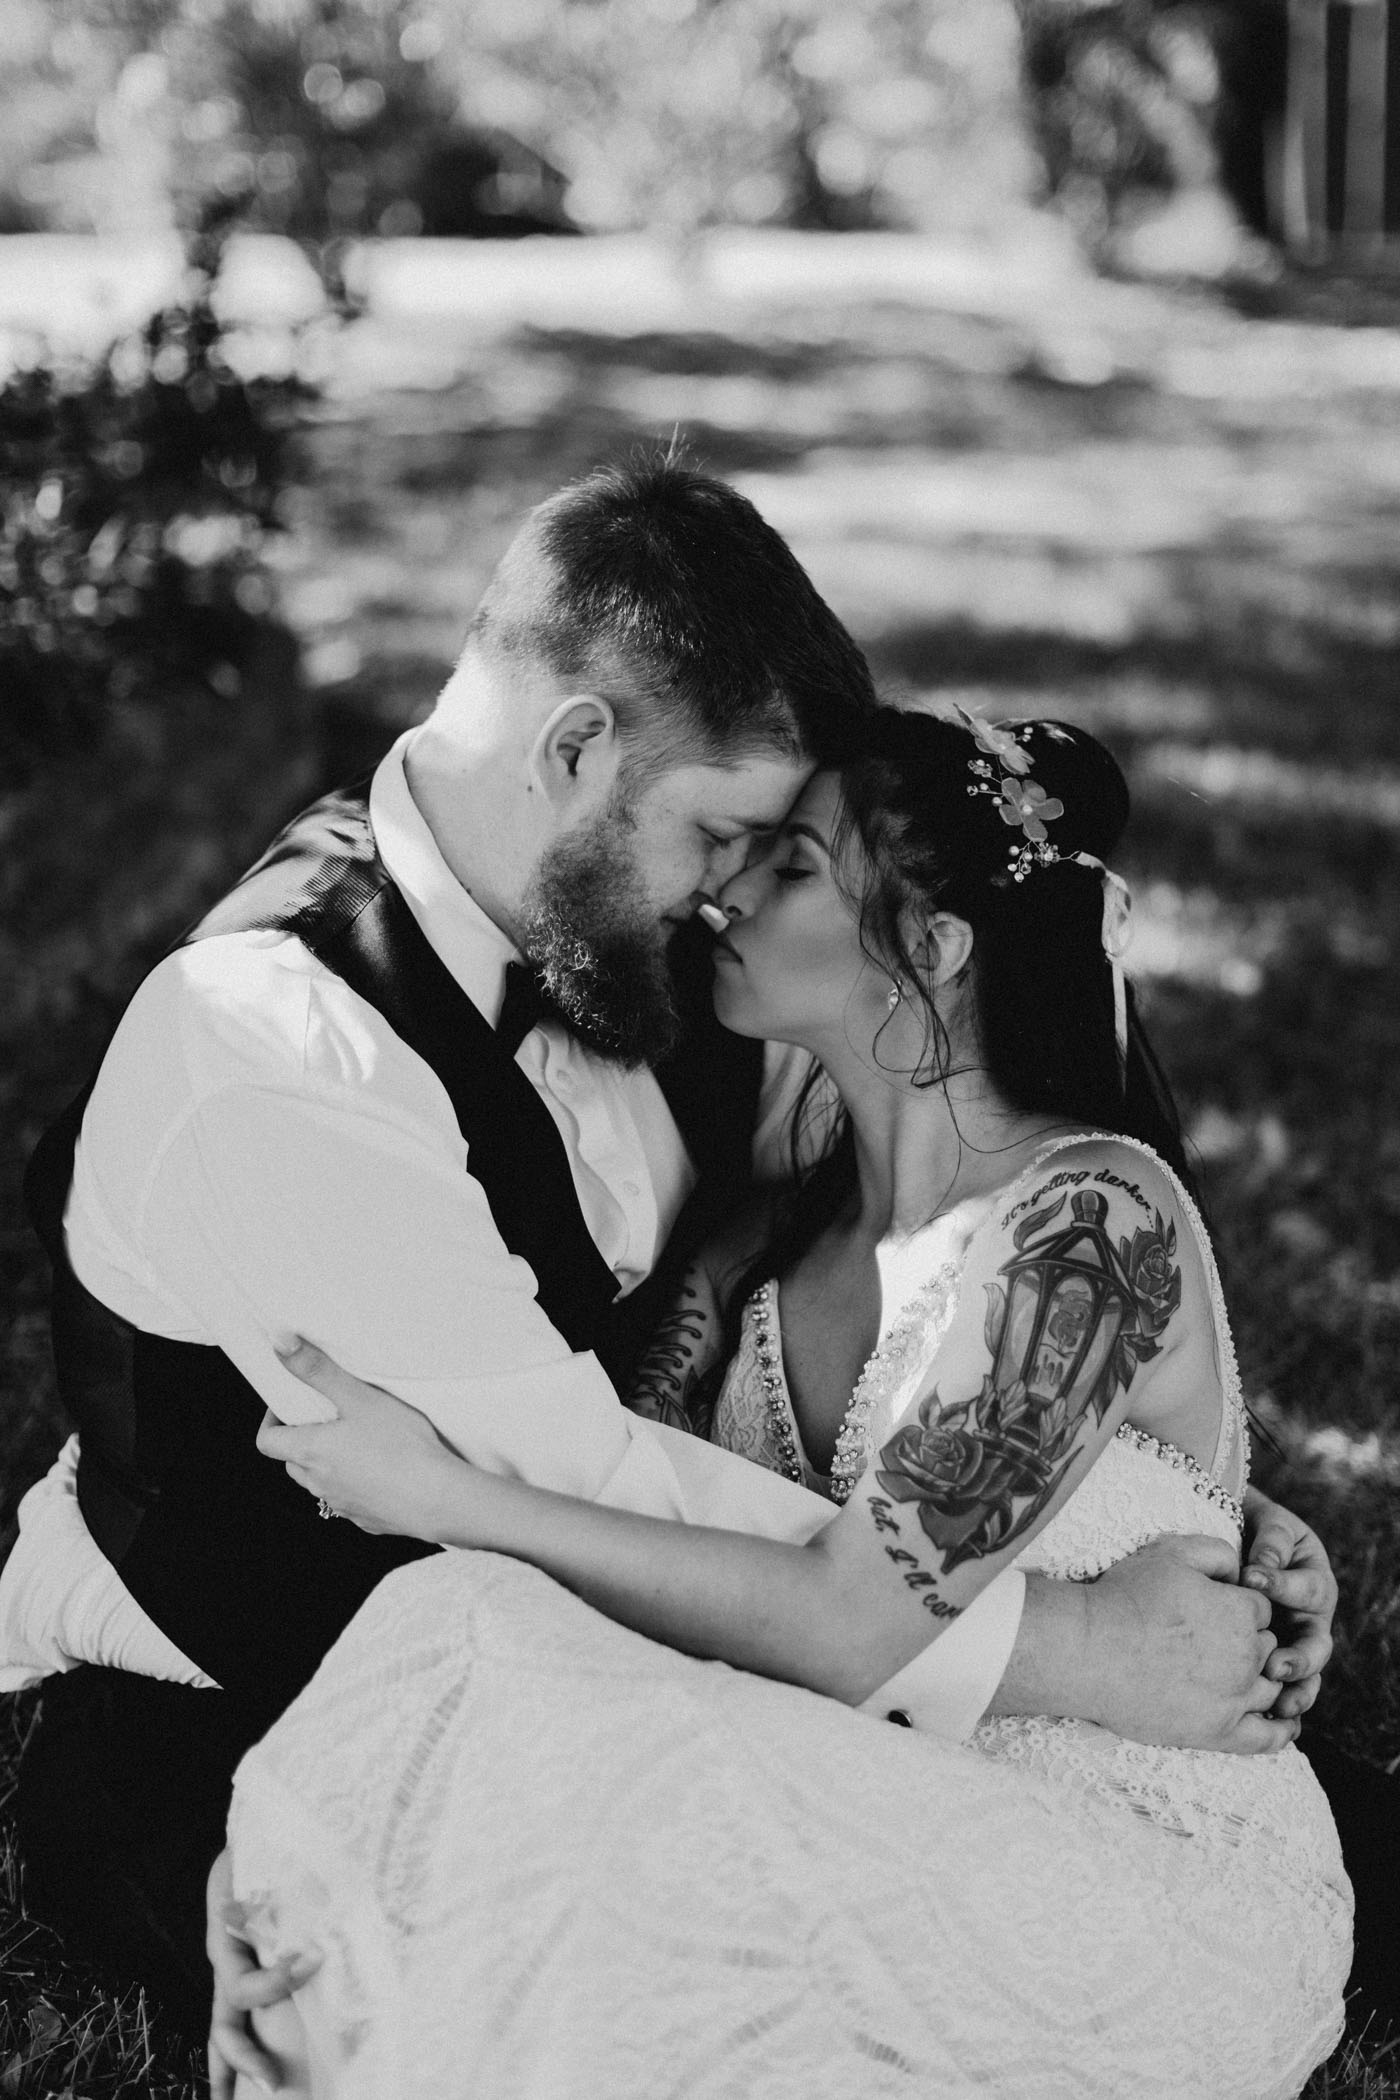 Black and white edited photo of bride and groom being romantic after wedding ceremony